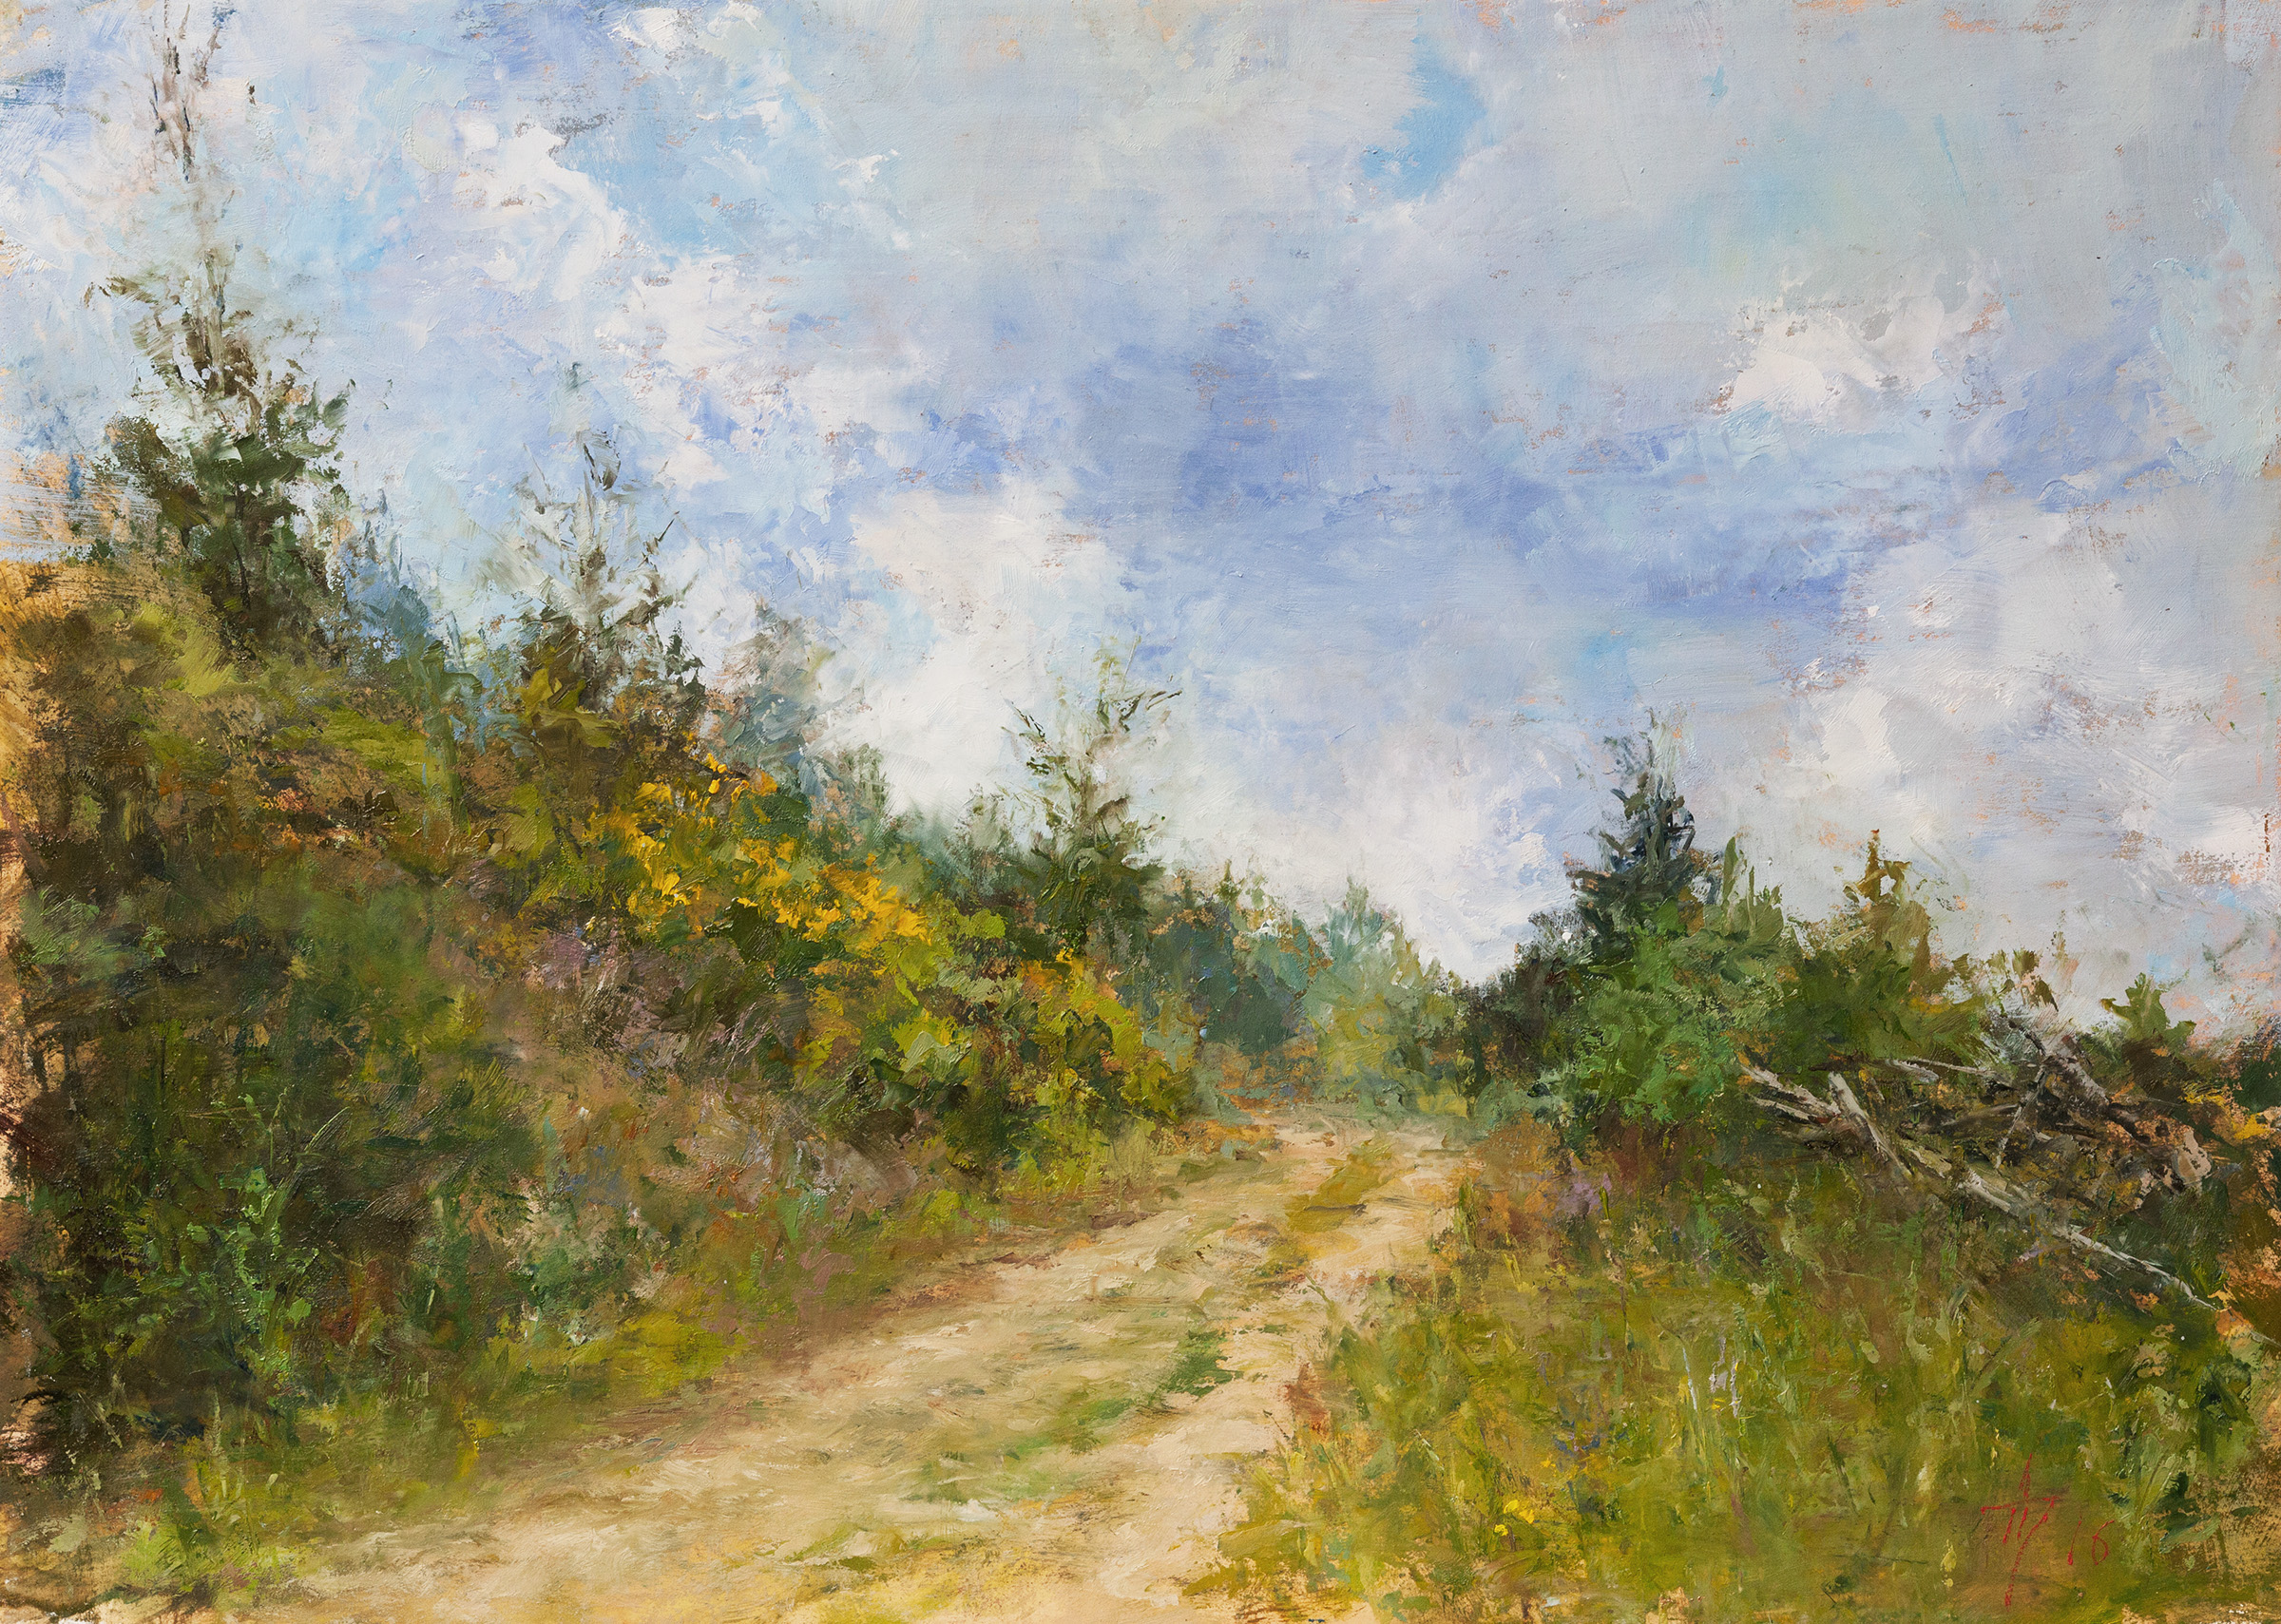 Andrei Tchernoukha, Above Martinsthal, Oil on wood panel, 25 x 35 x 0.6,  http://atchern.com